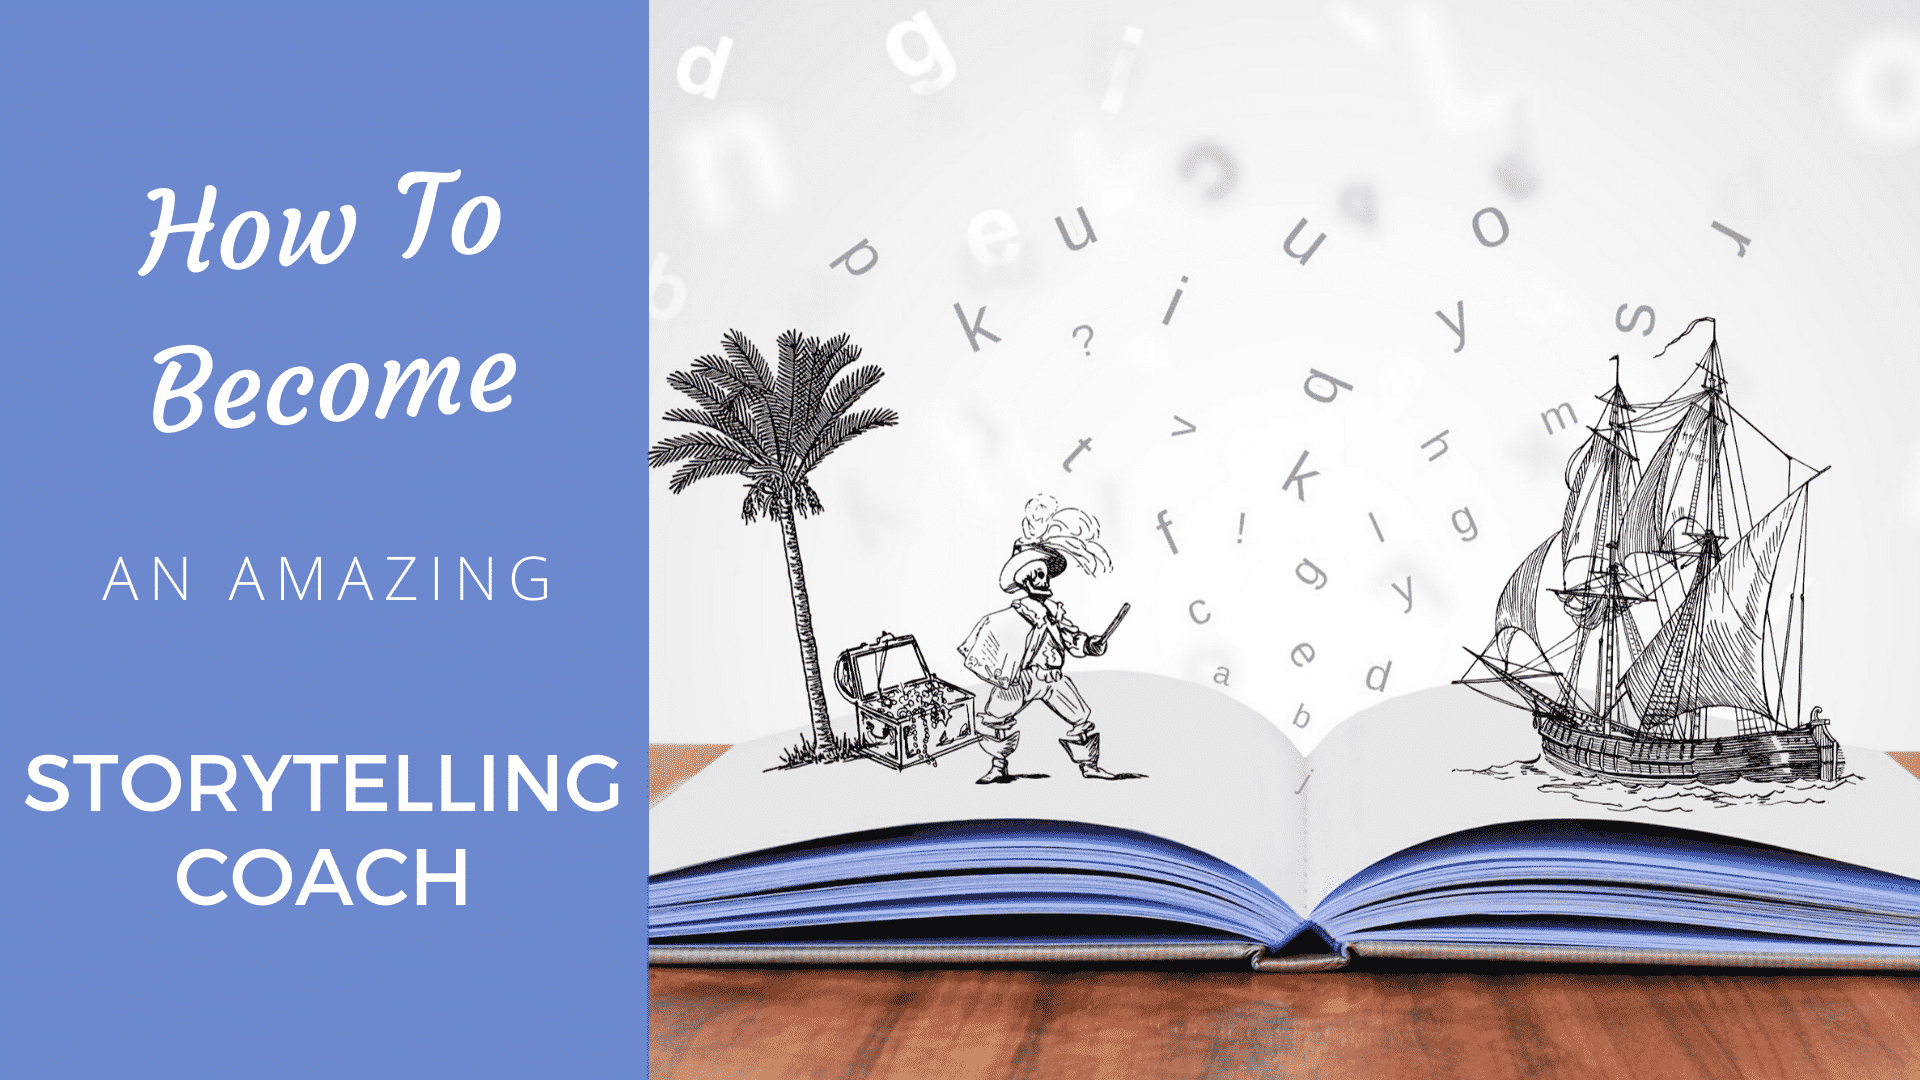 How to Become an Amazing Storytelling Coach in 2020? storytelling coach